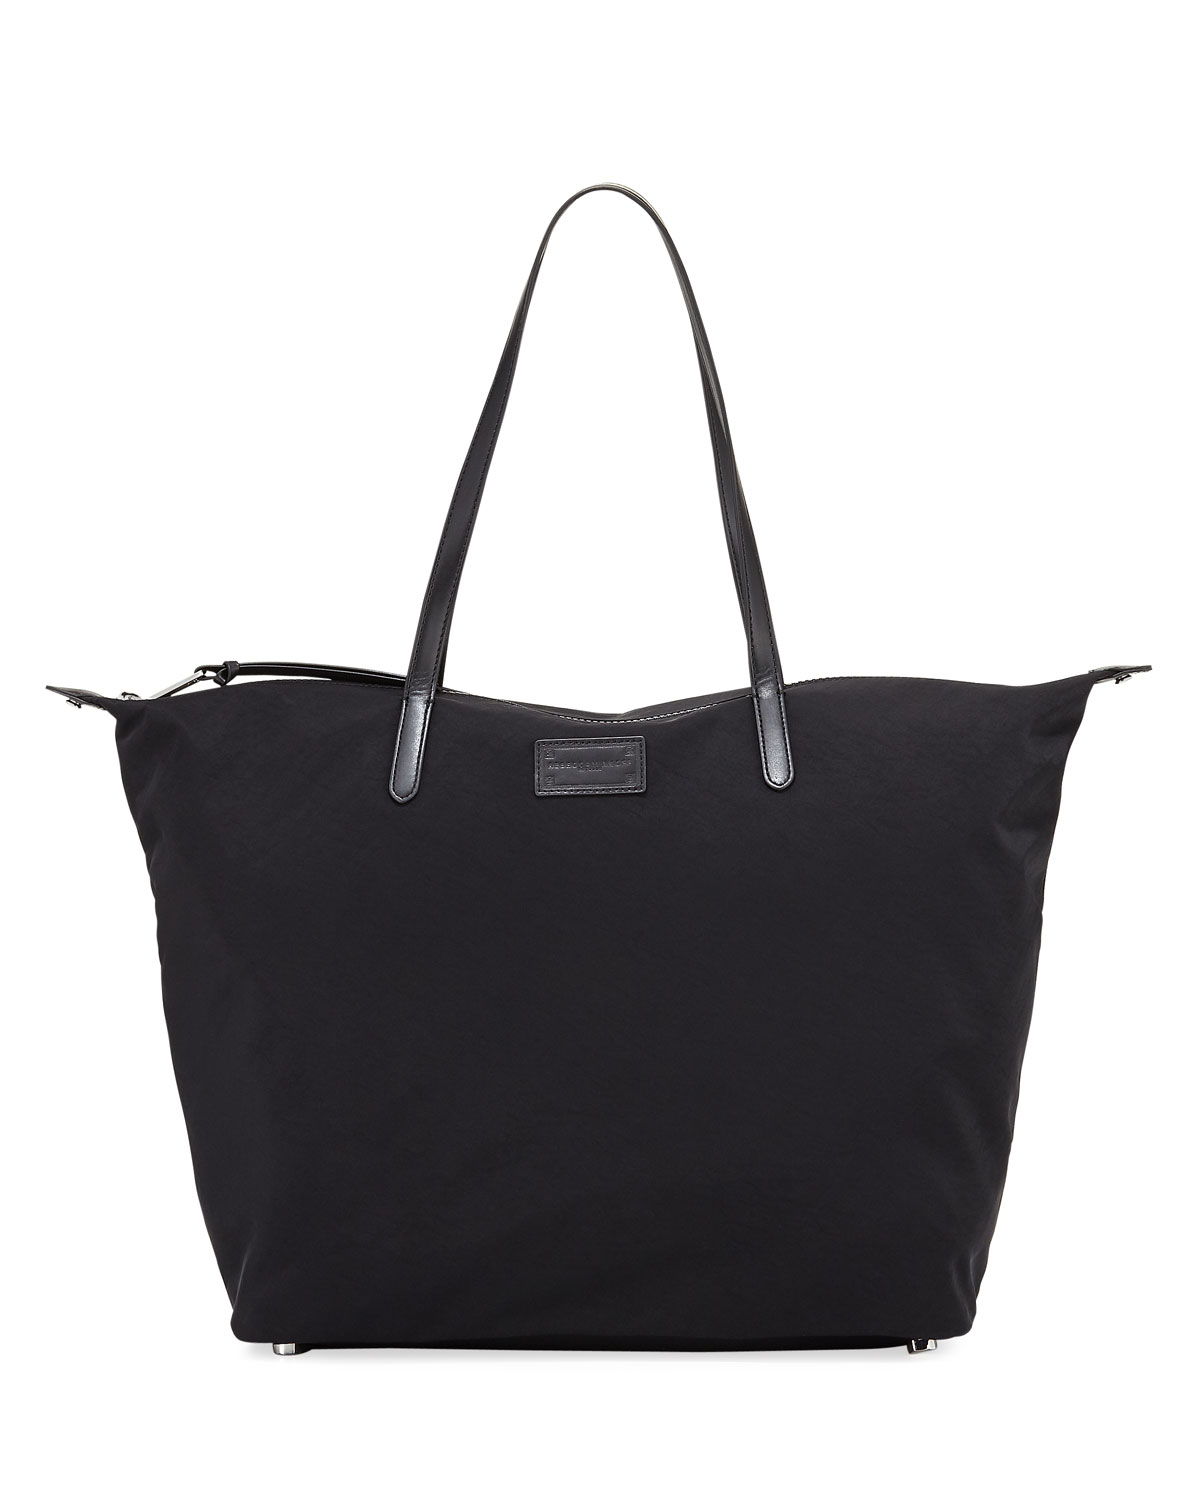 Quick Look. Rebecca Minkoff · Washed Nylon Tote Bag. Available in Black c919caf42d7e3